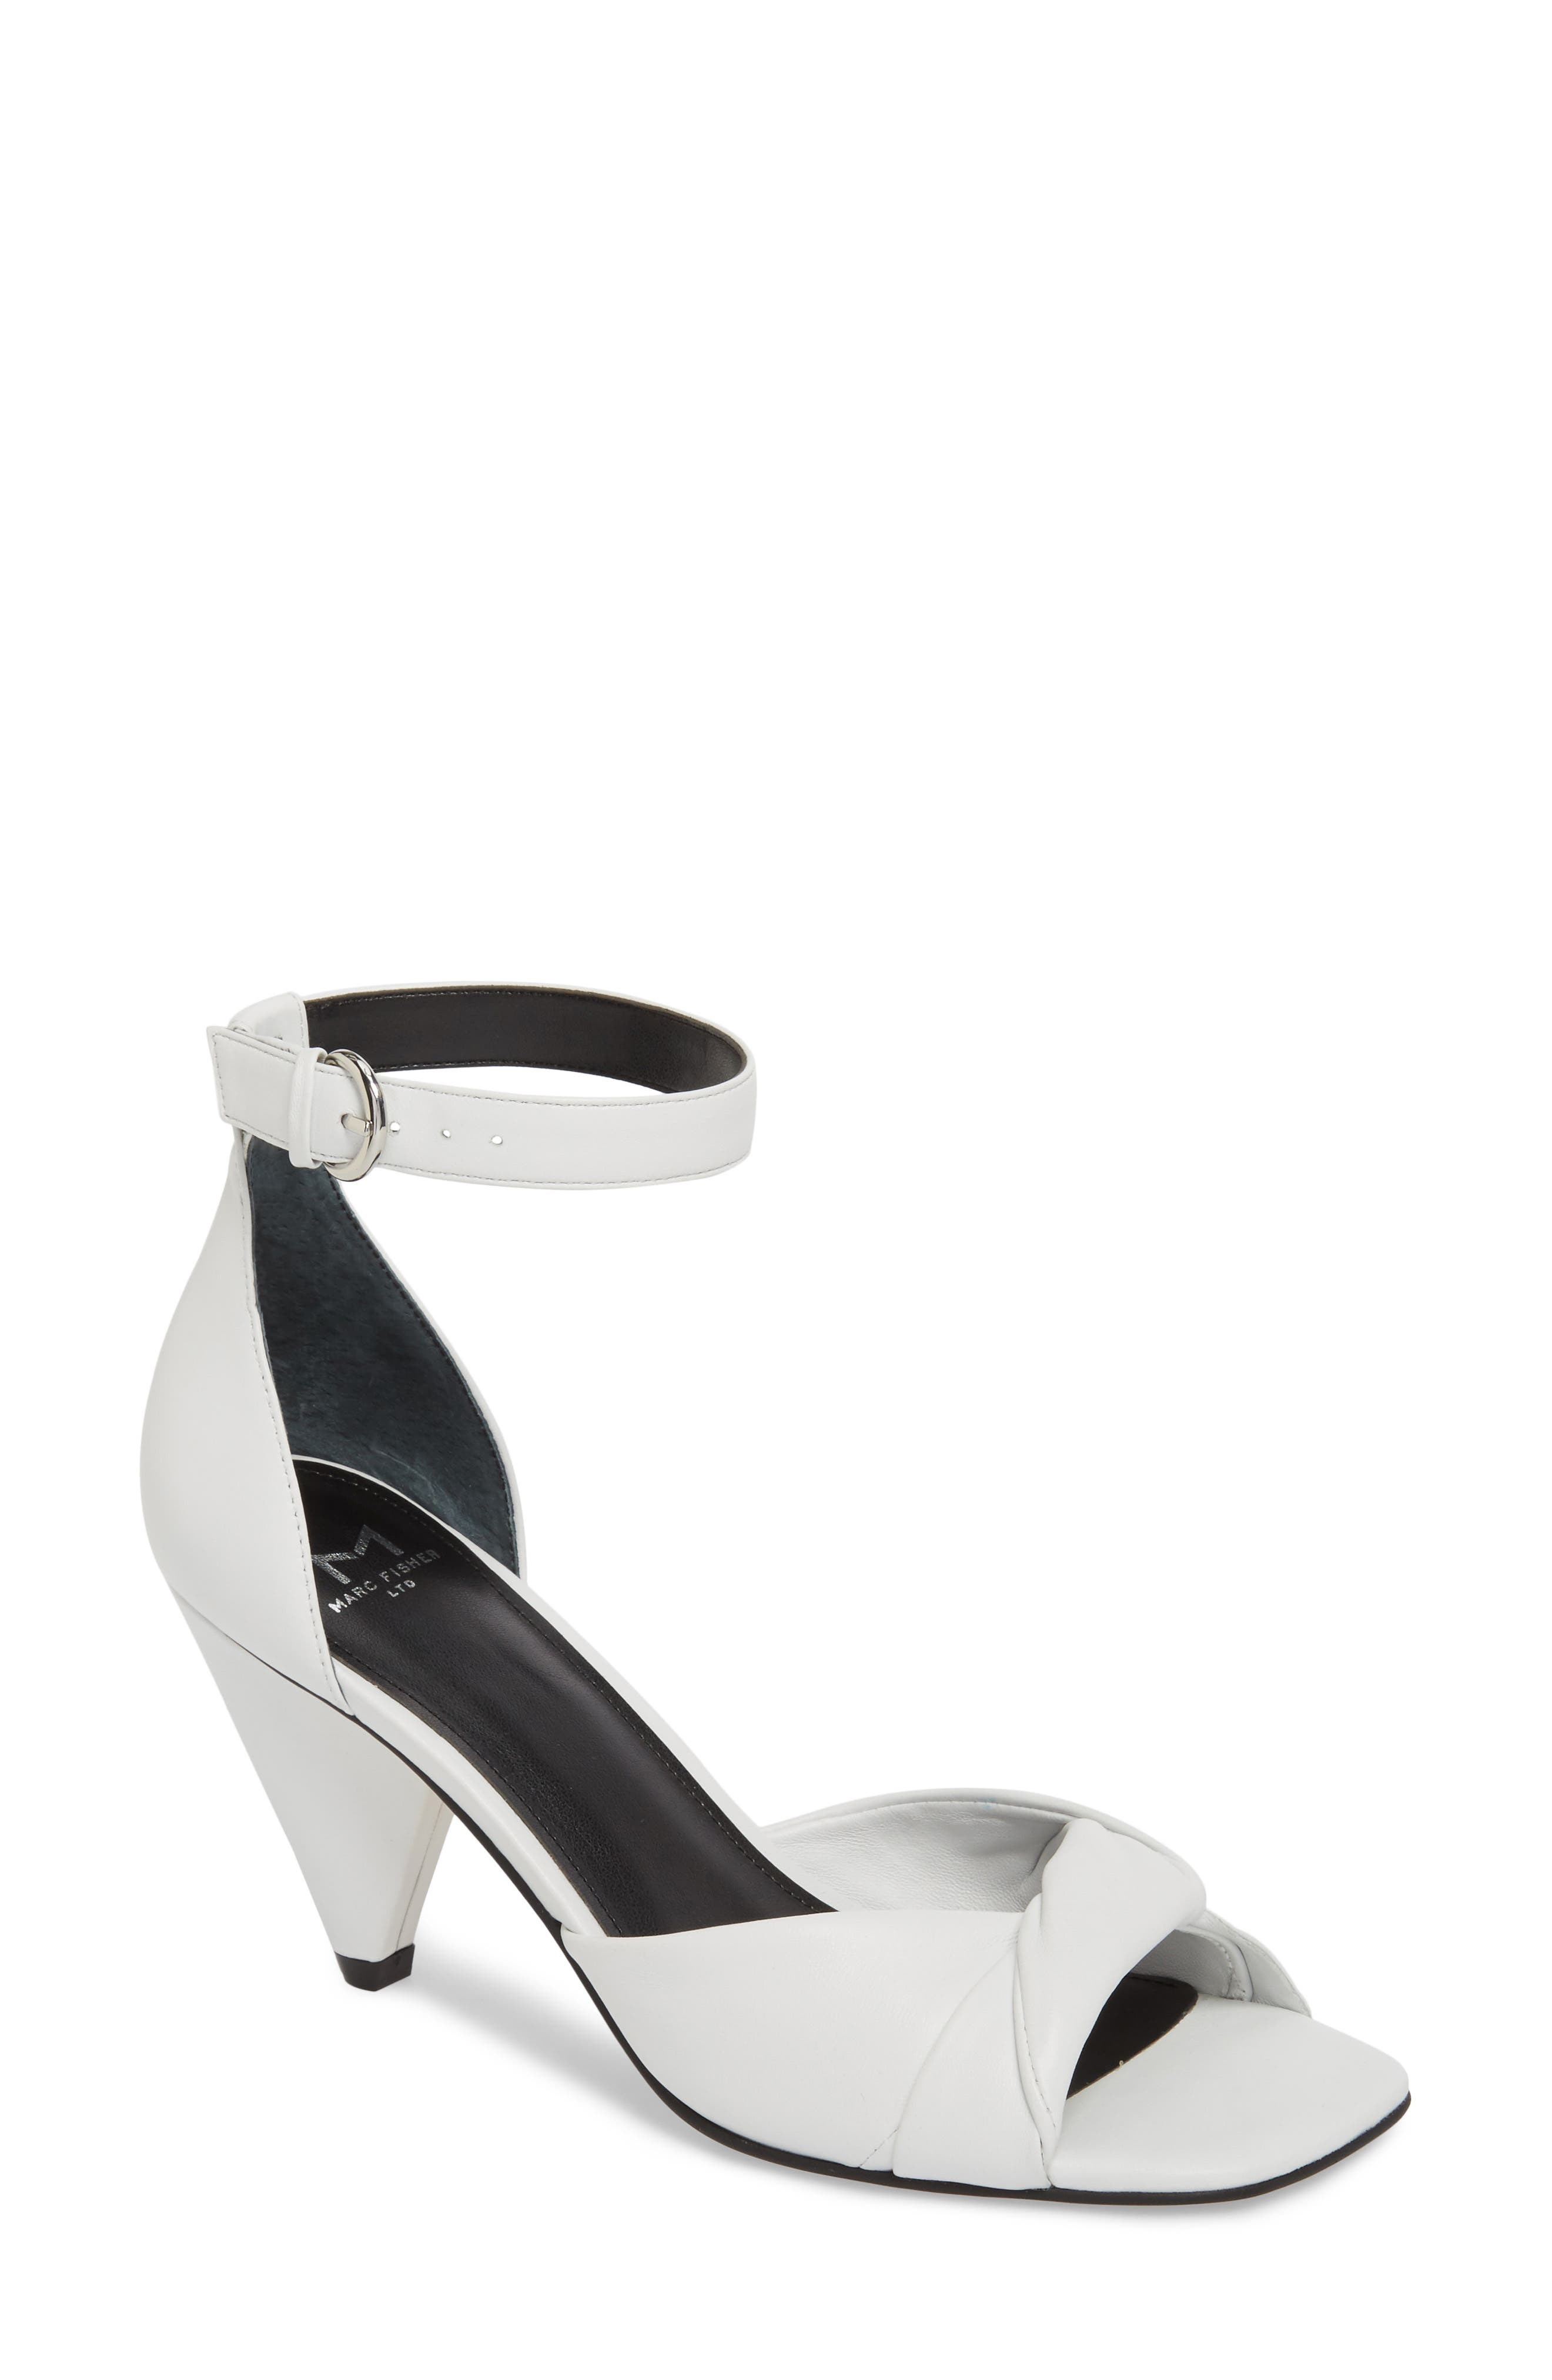 Ivory Sandal,                         Main,                         color, White Leather